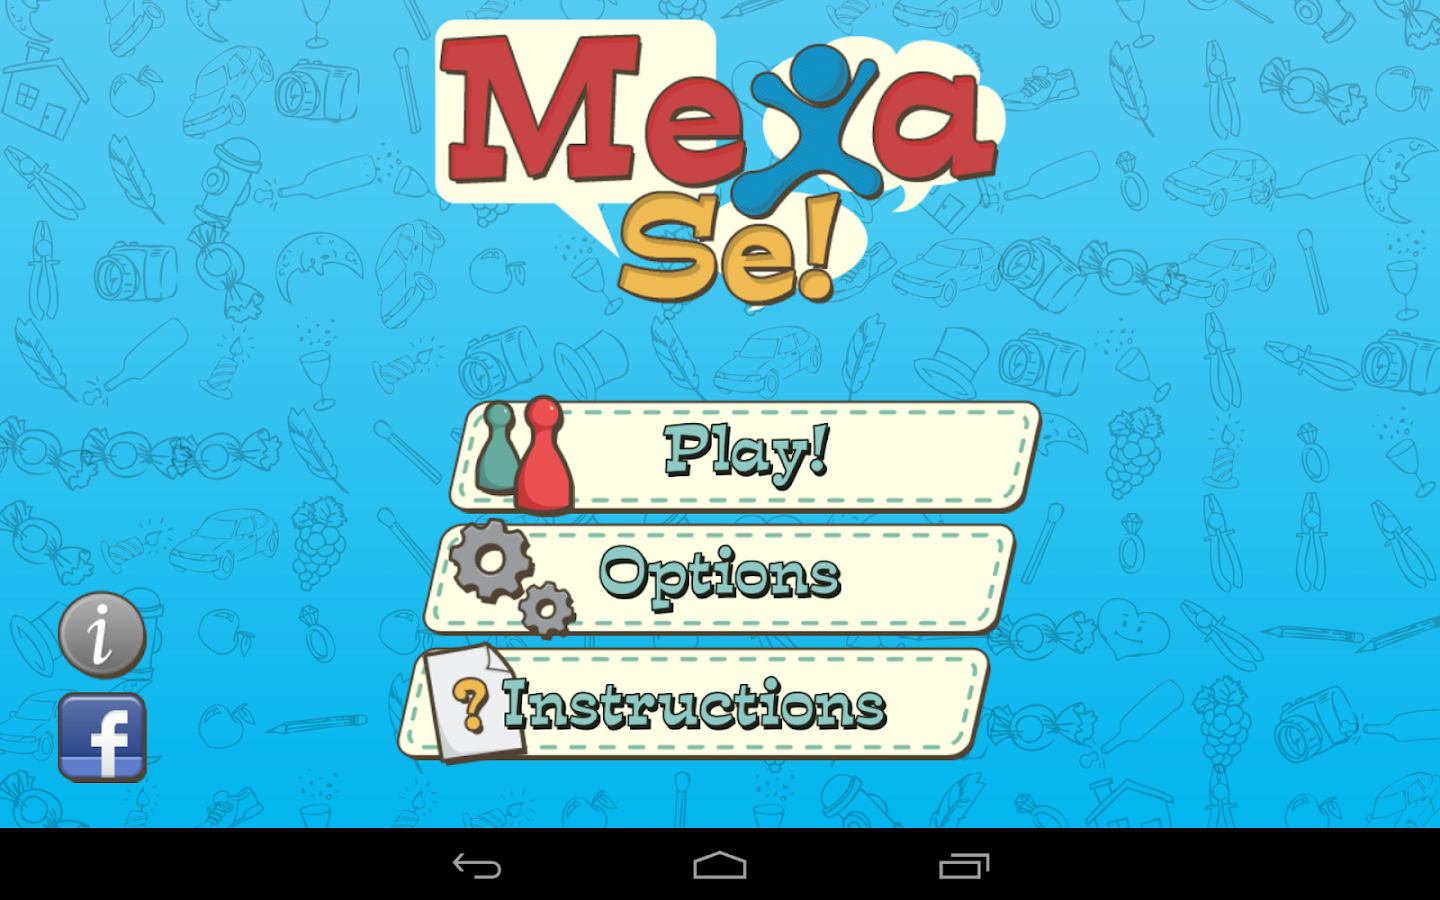 Mexa-se! The Game of Charades - screenshot